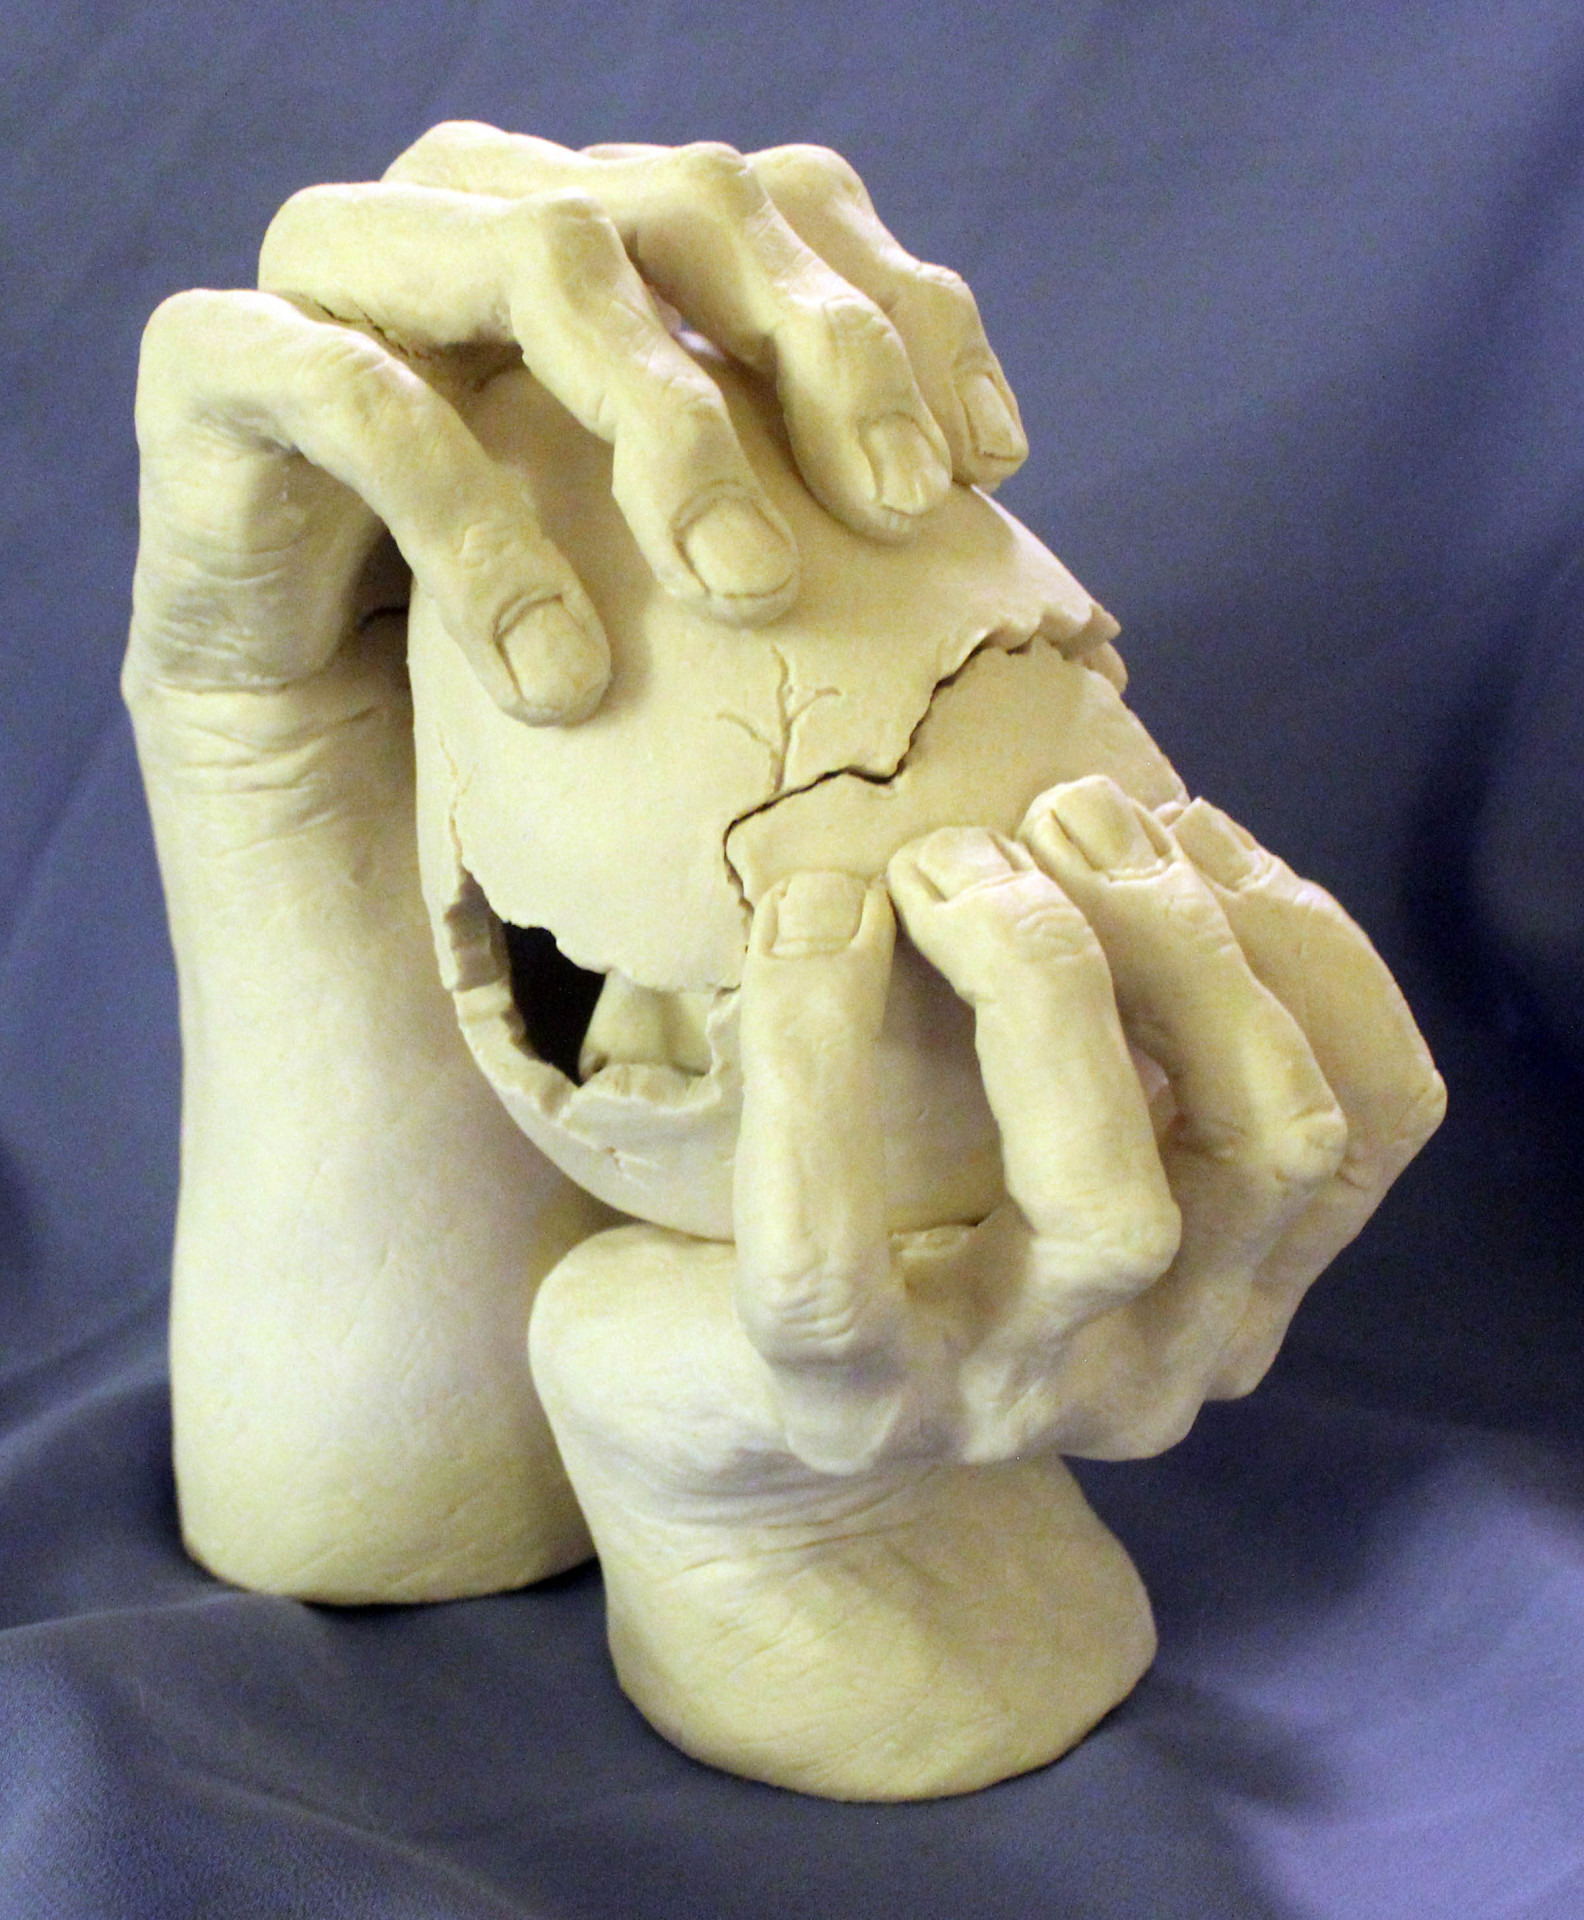 Hands holding cracked egg with creature ceramic sculpture